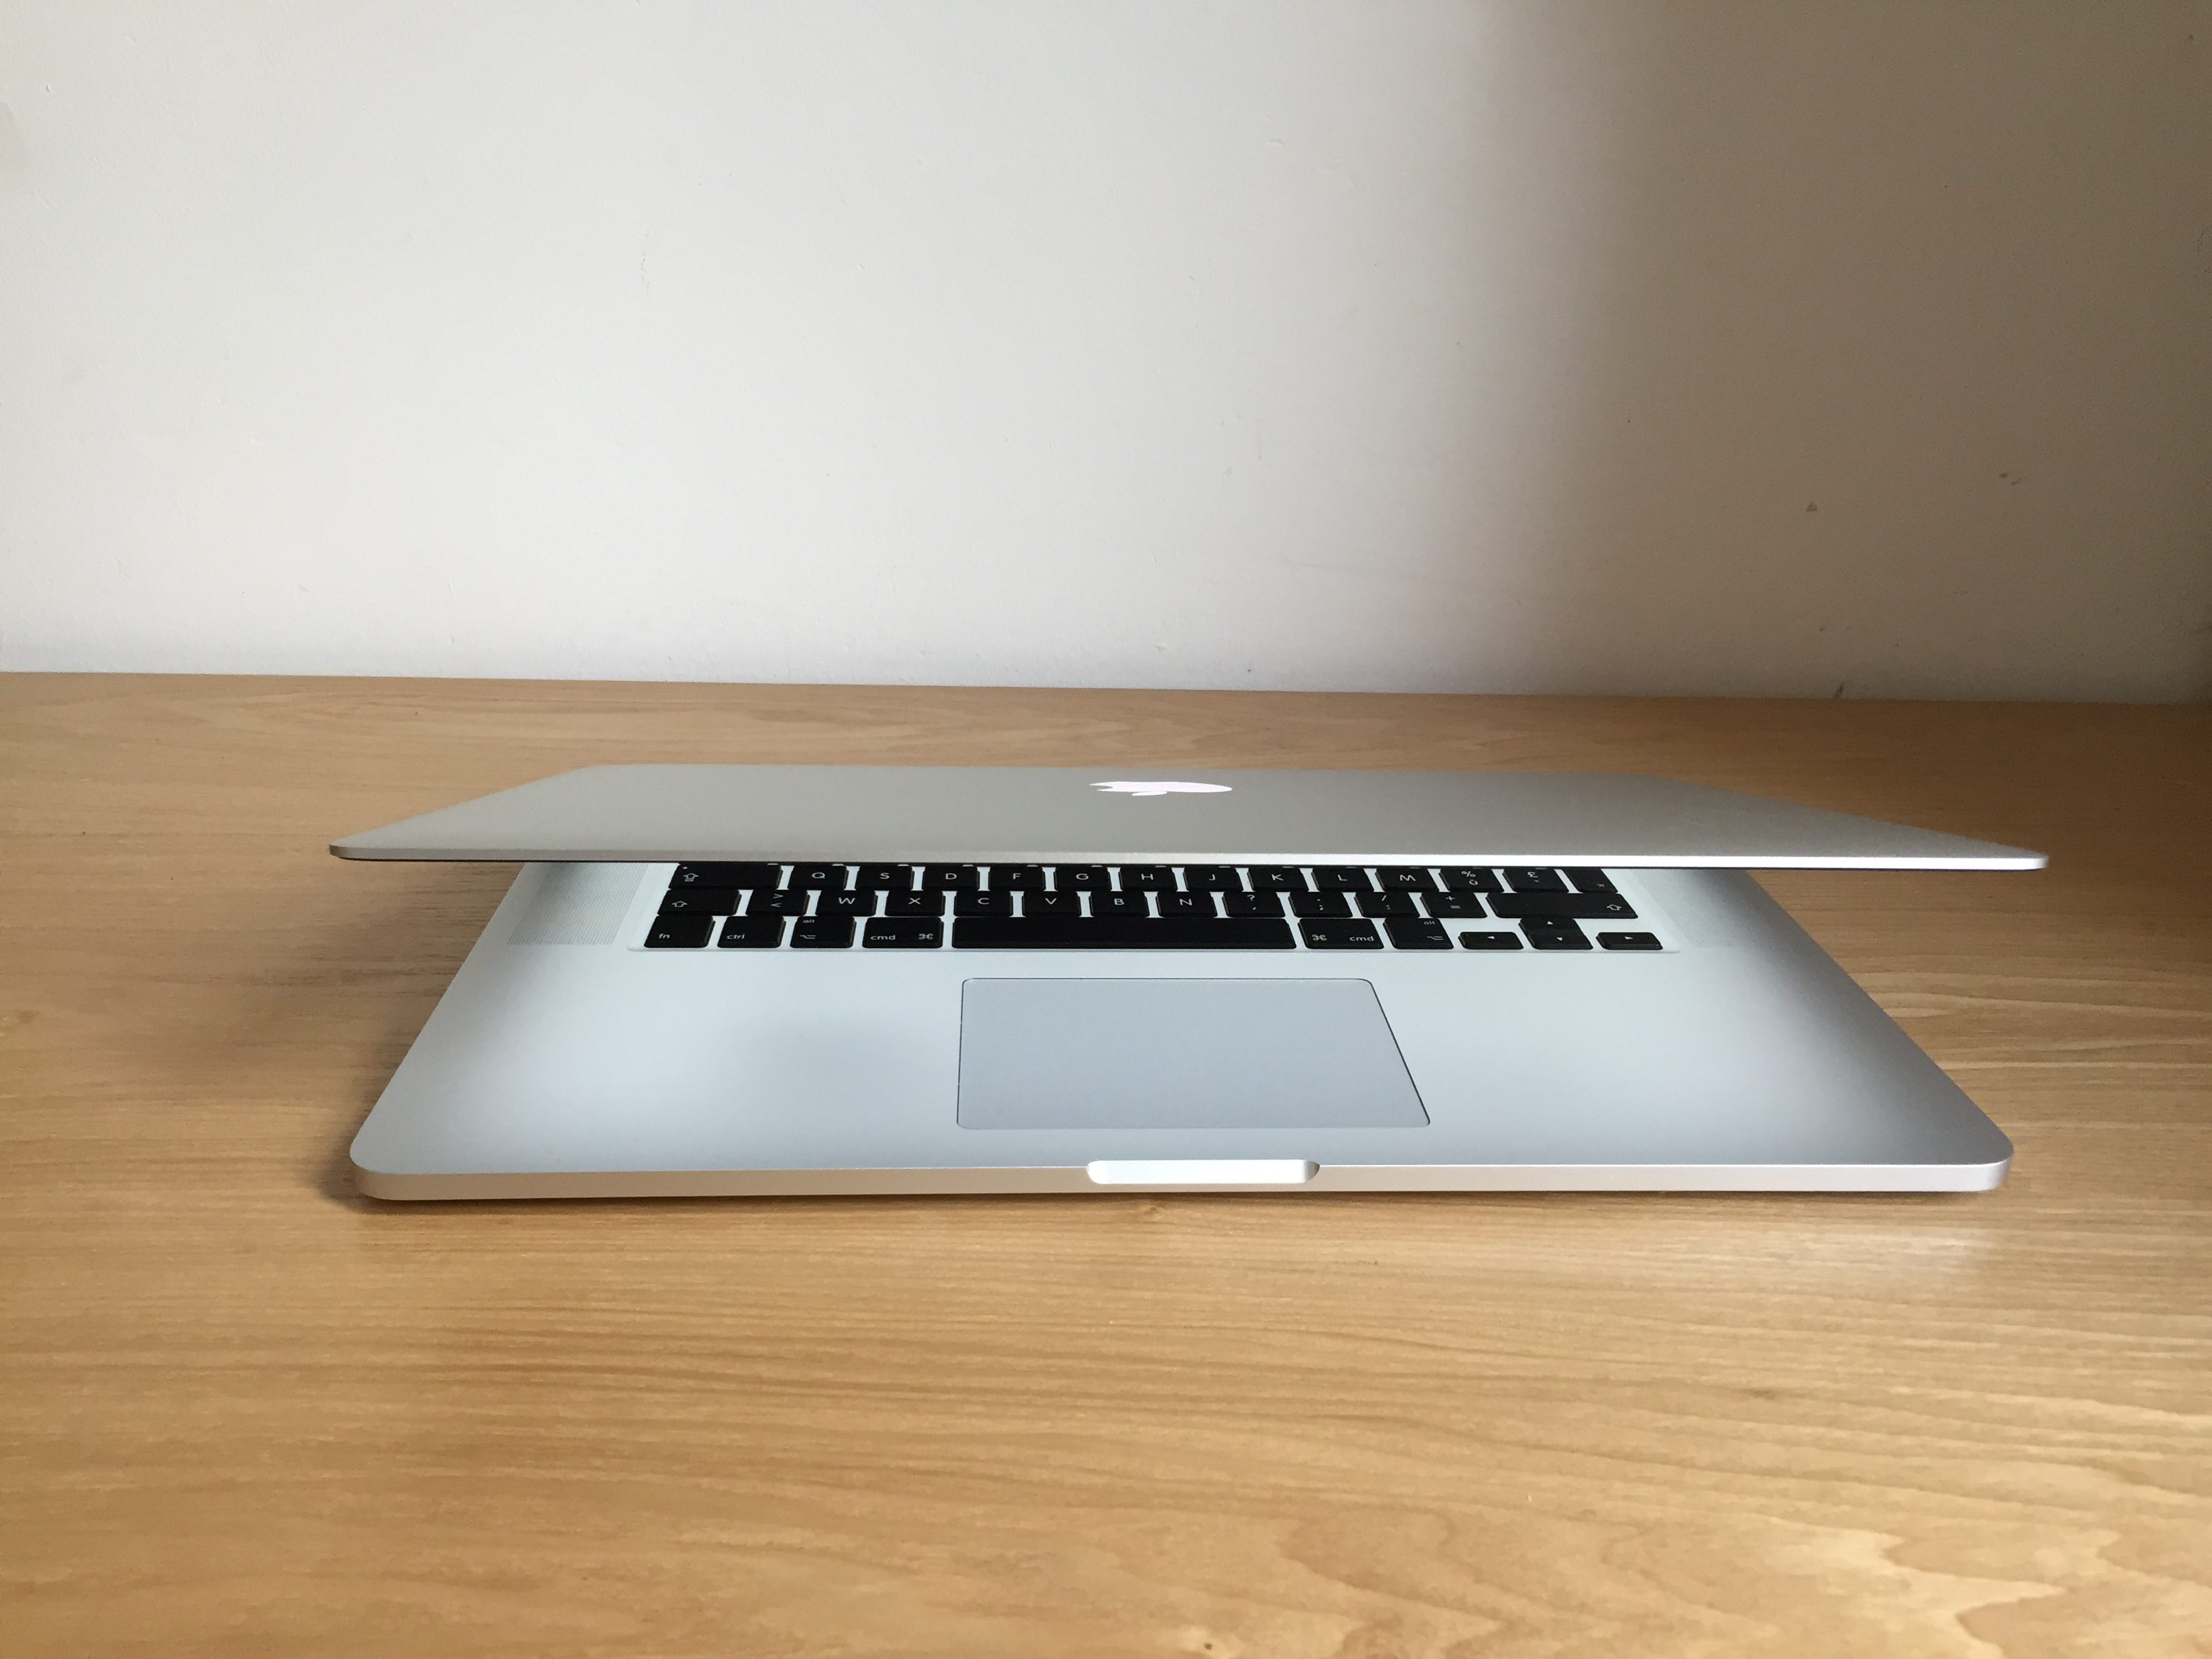 Difference macbook pro macbook pro retina00016